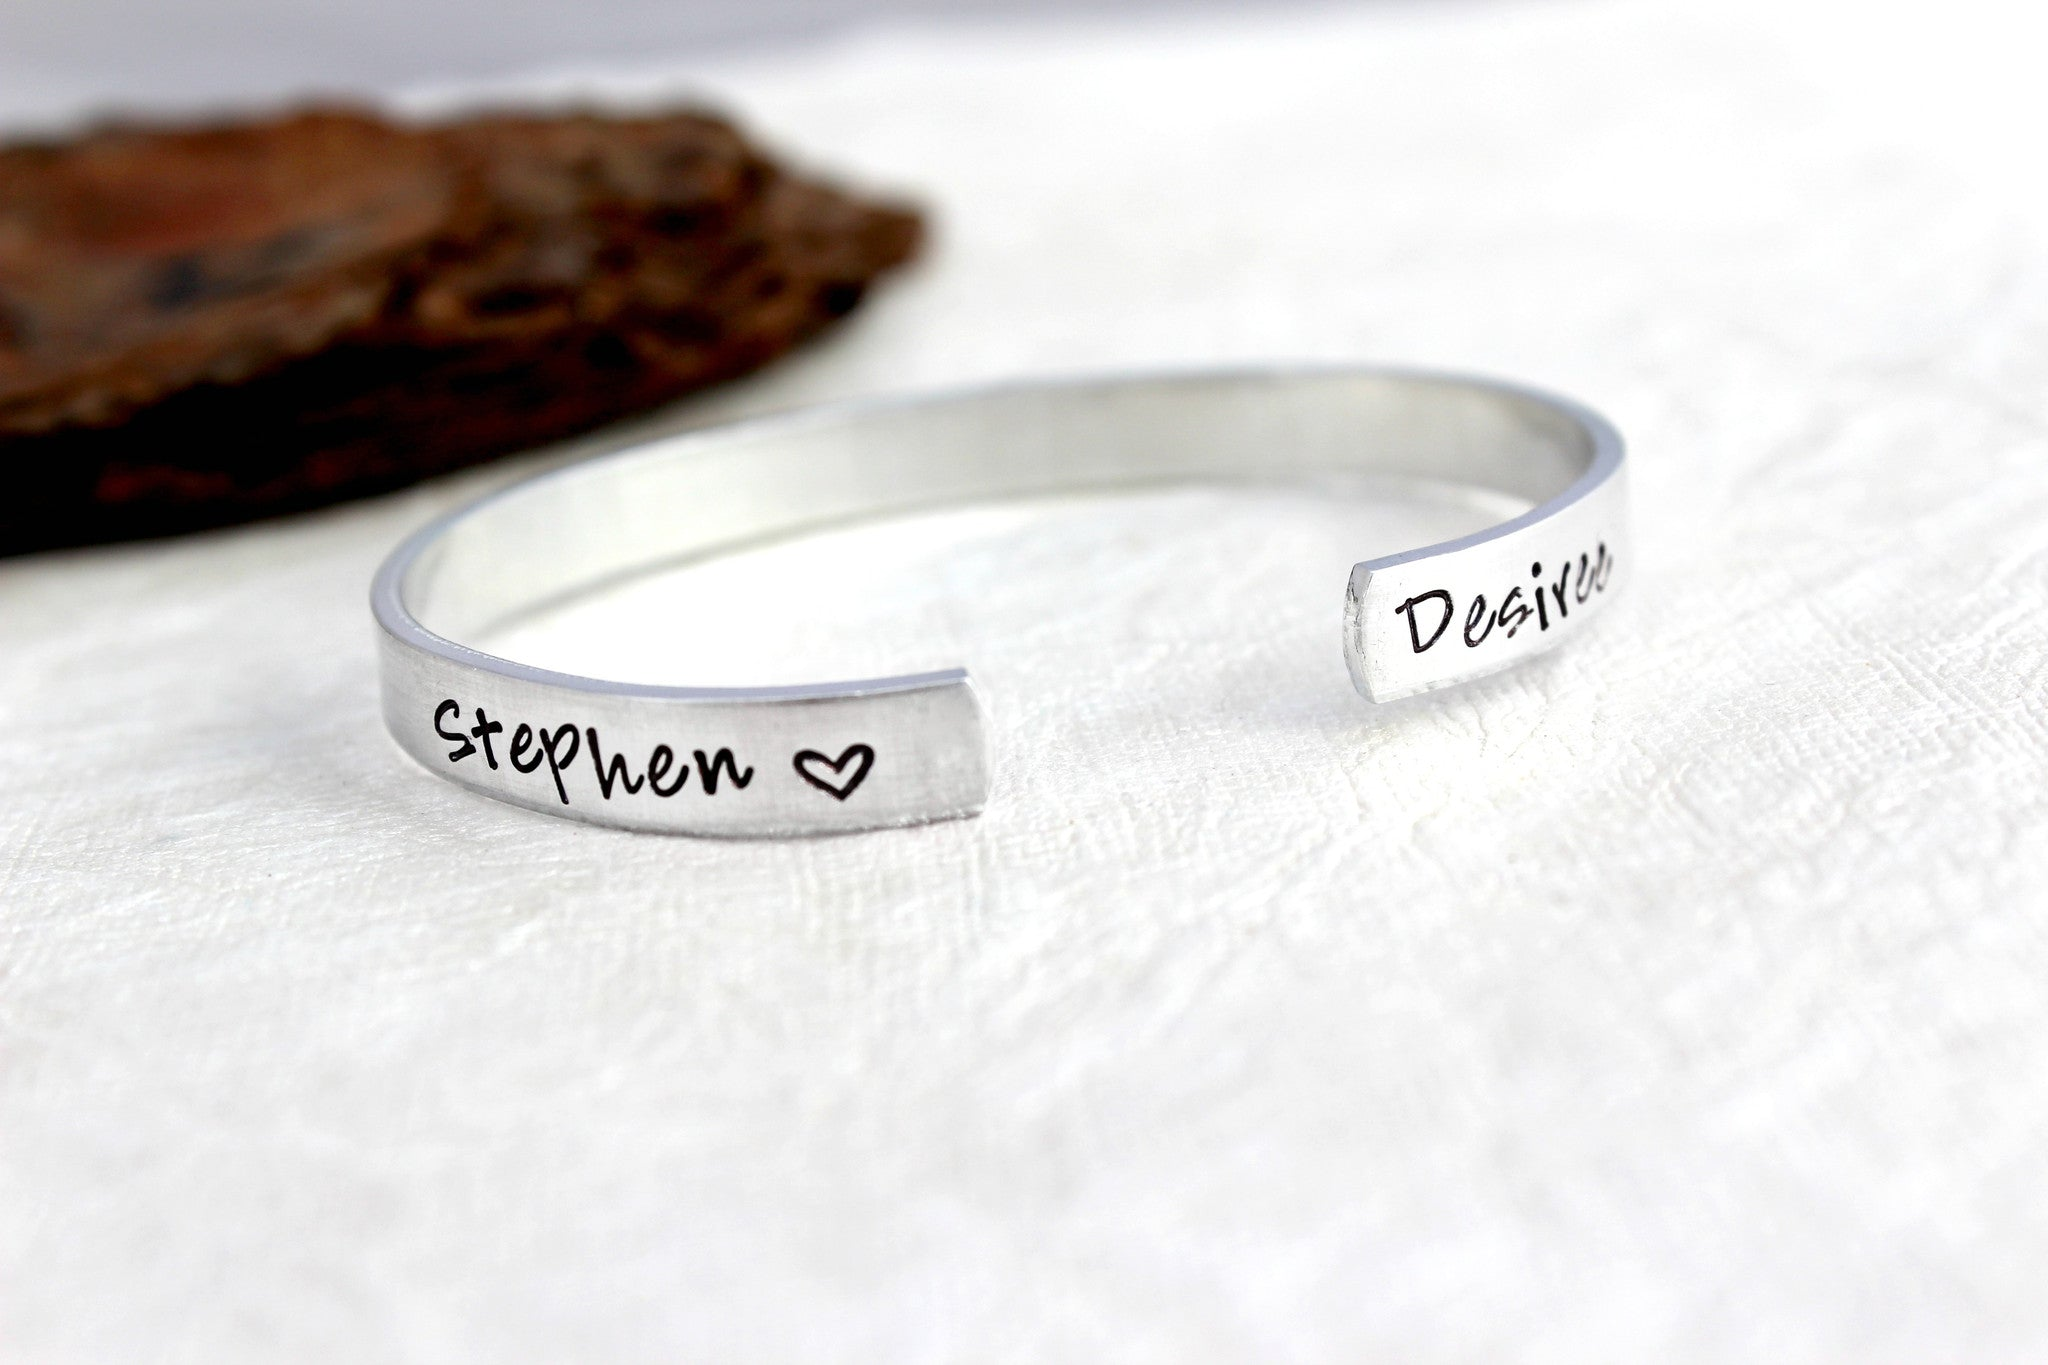 bride do anniversary bracelets pin bangle day expressions i wedding stamped gift hand bracelet jewelry